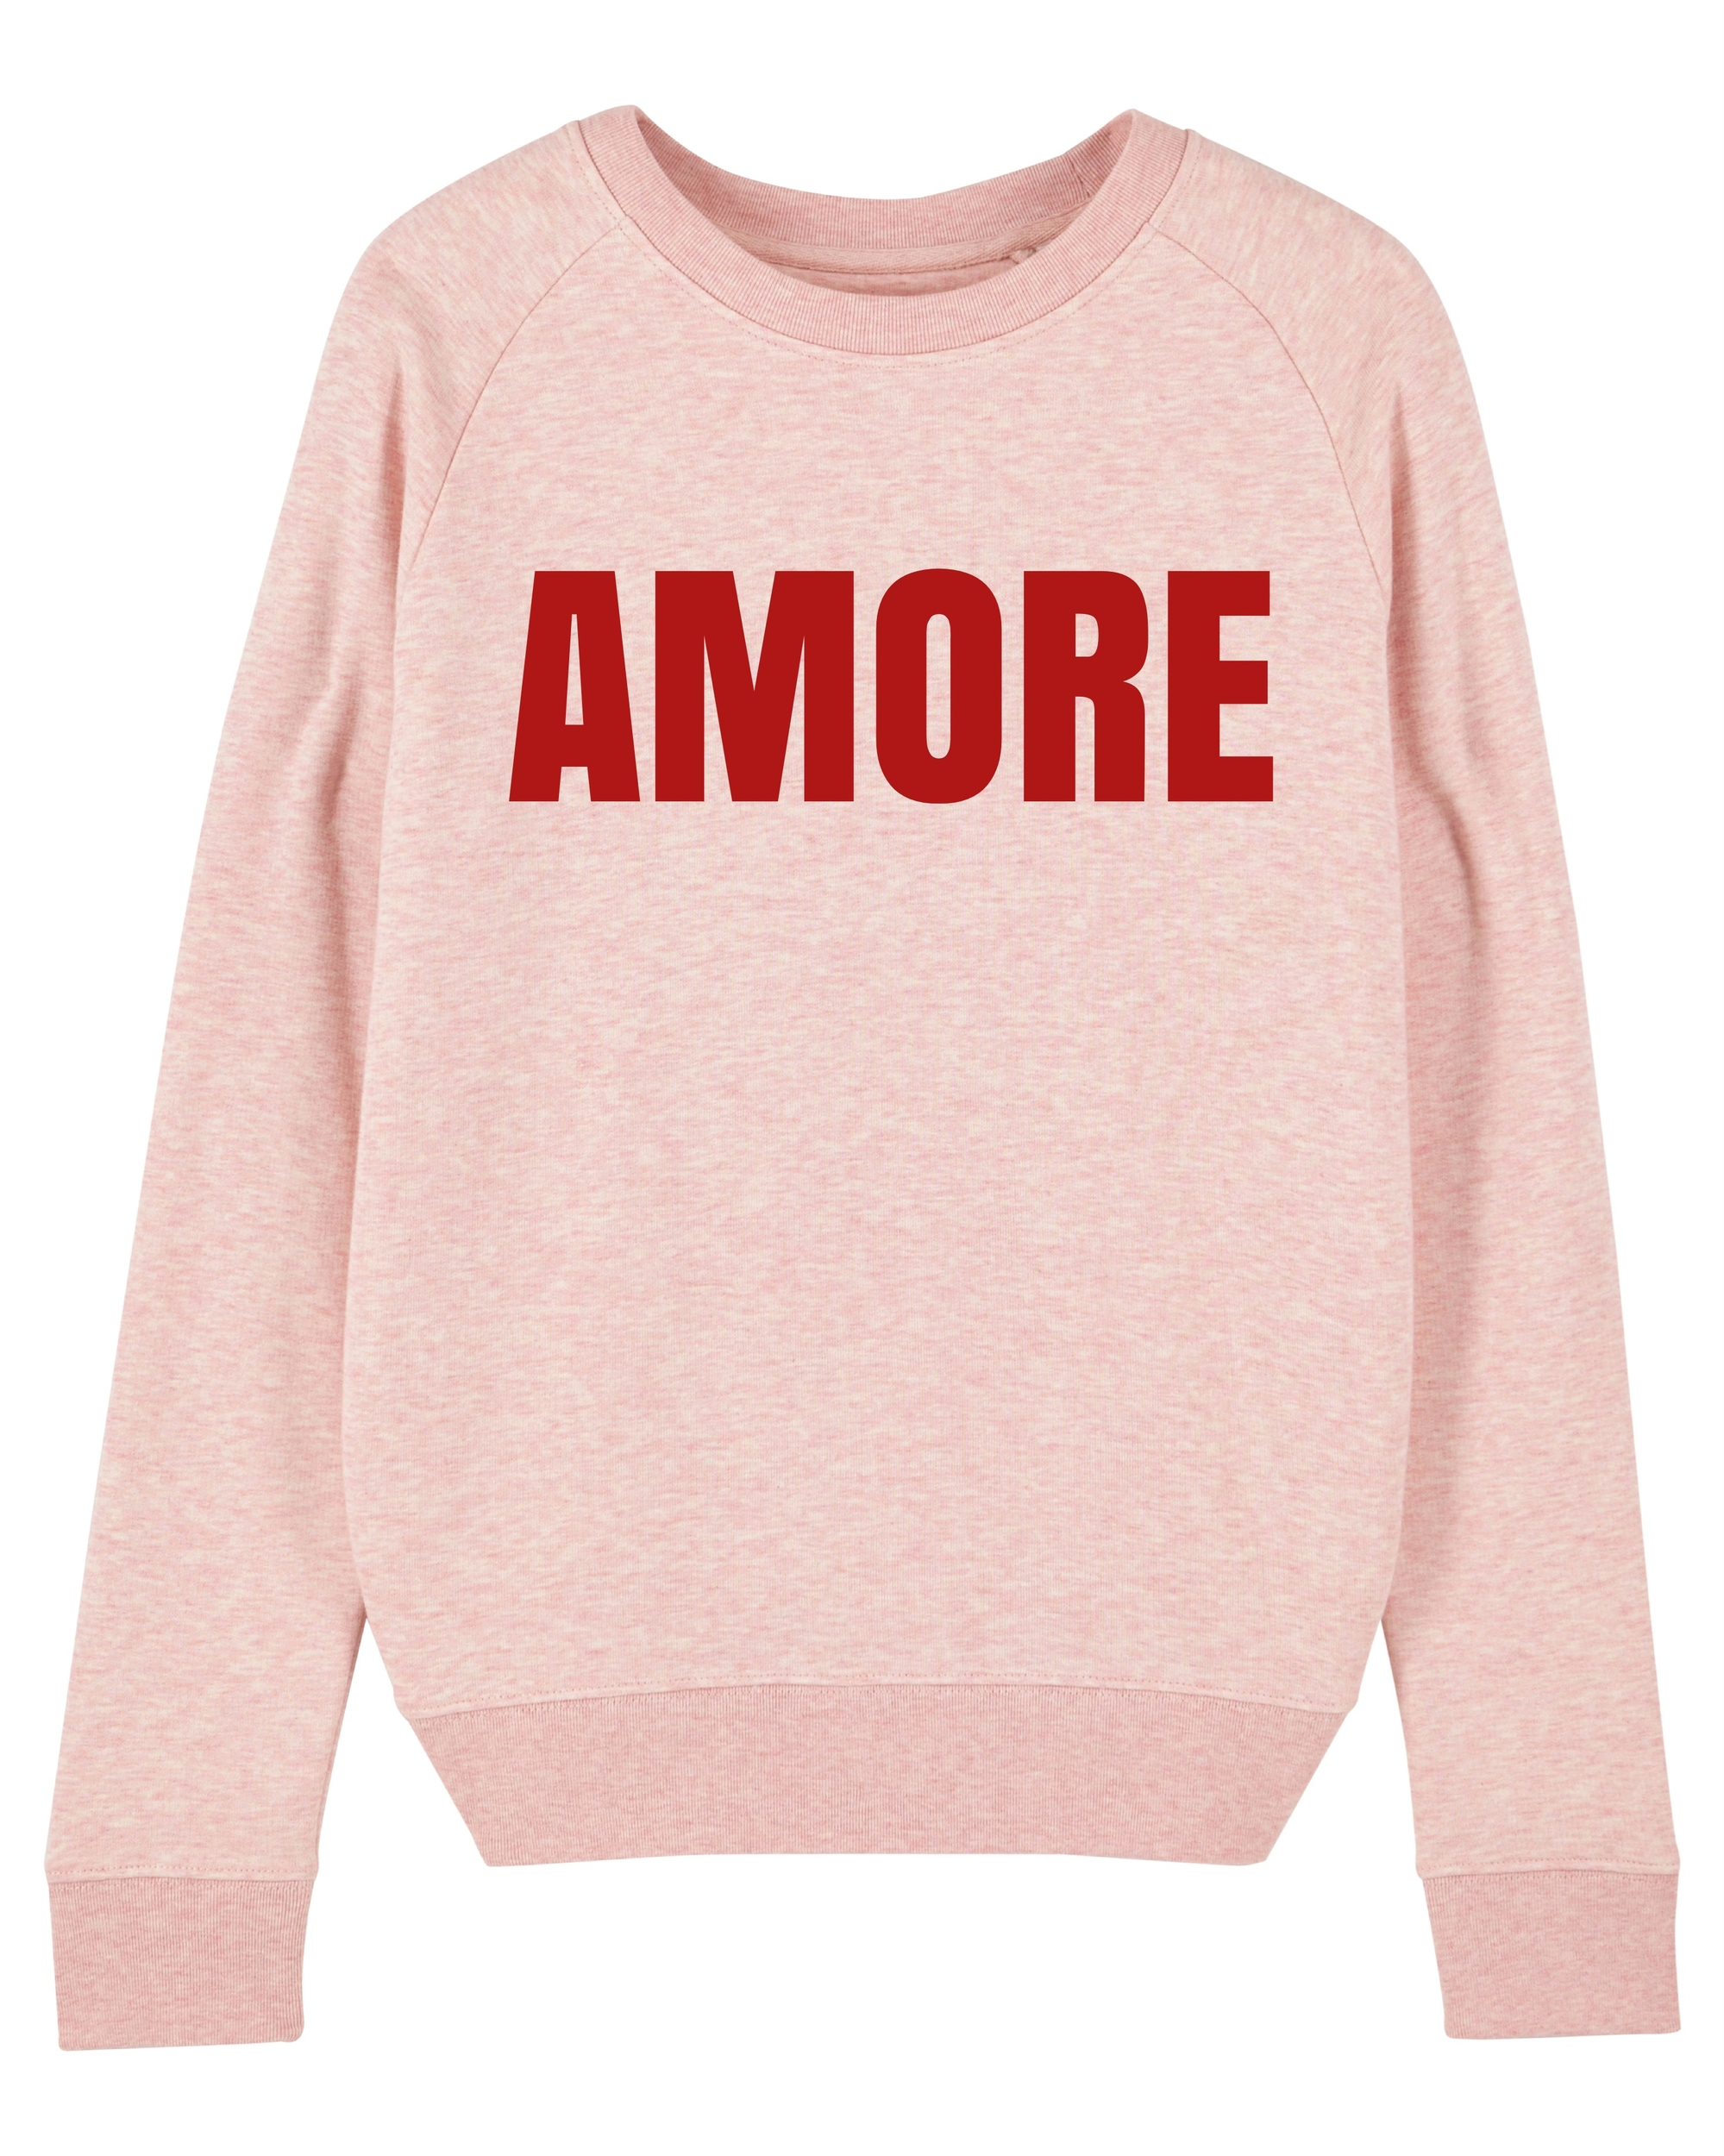 AMORE (Velours)